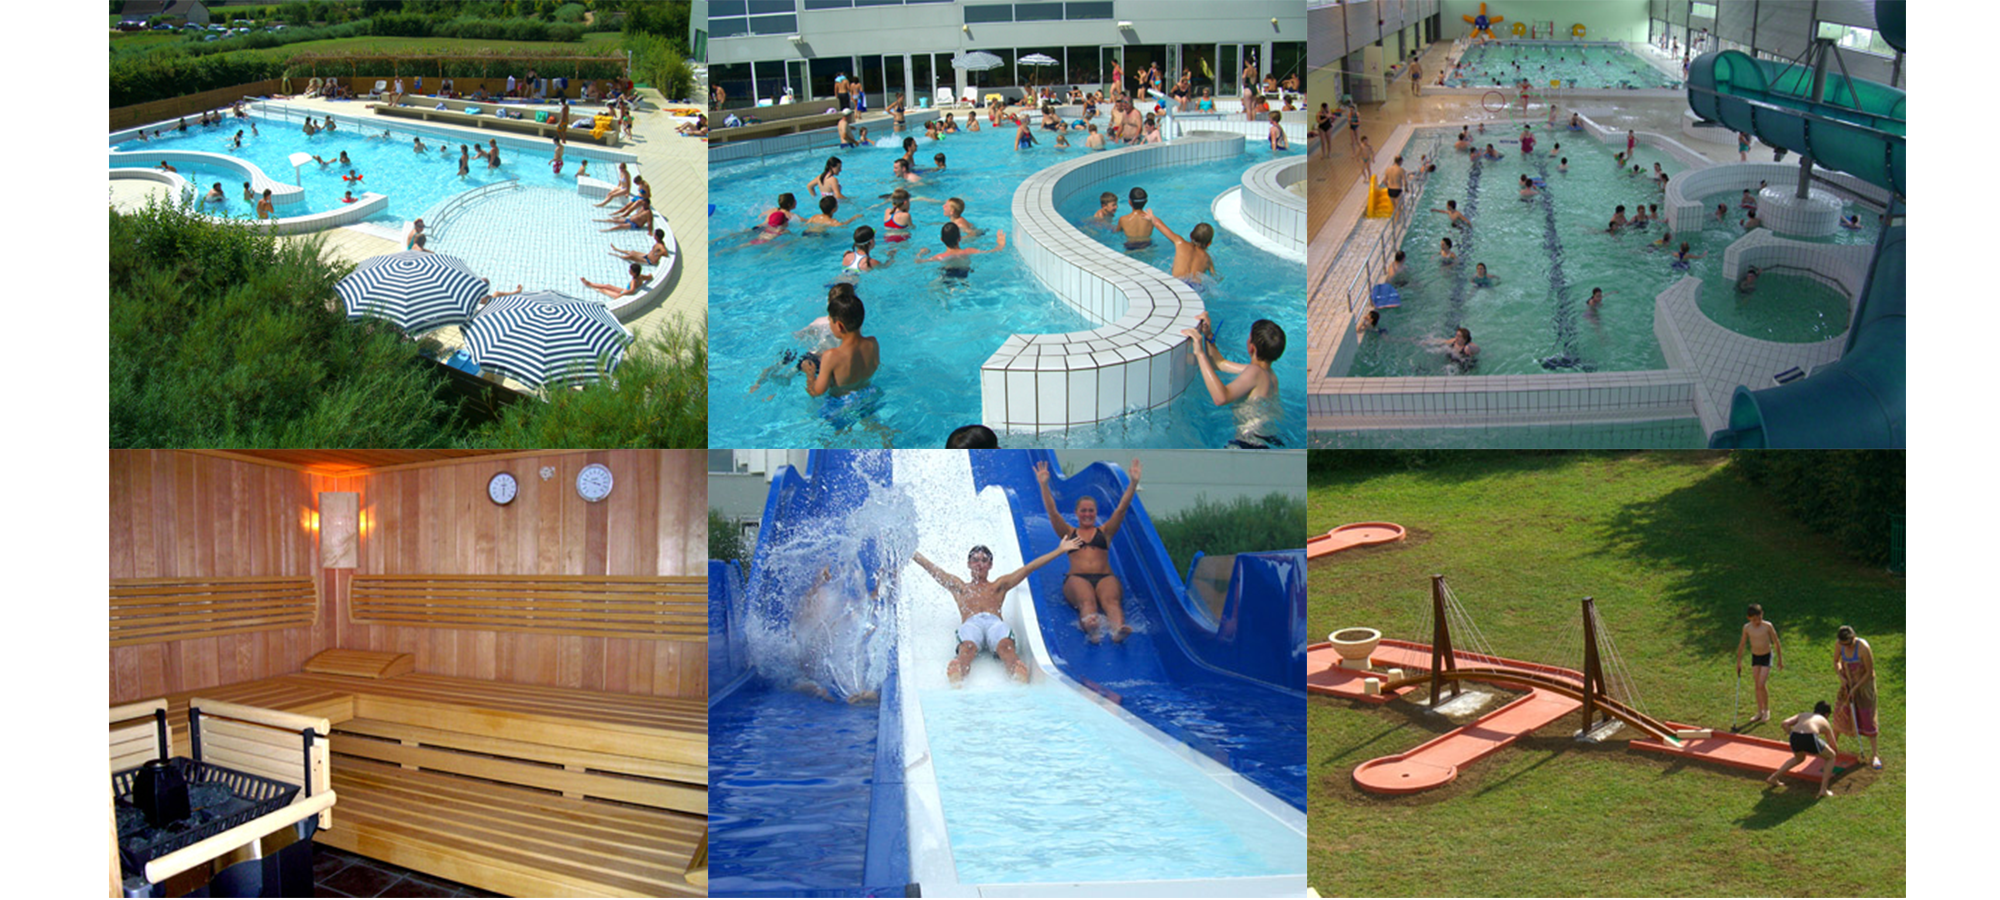 camping piscines Indre